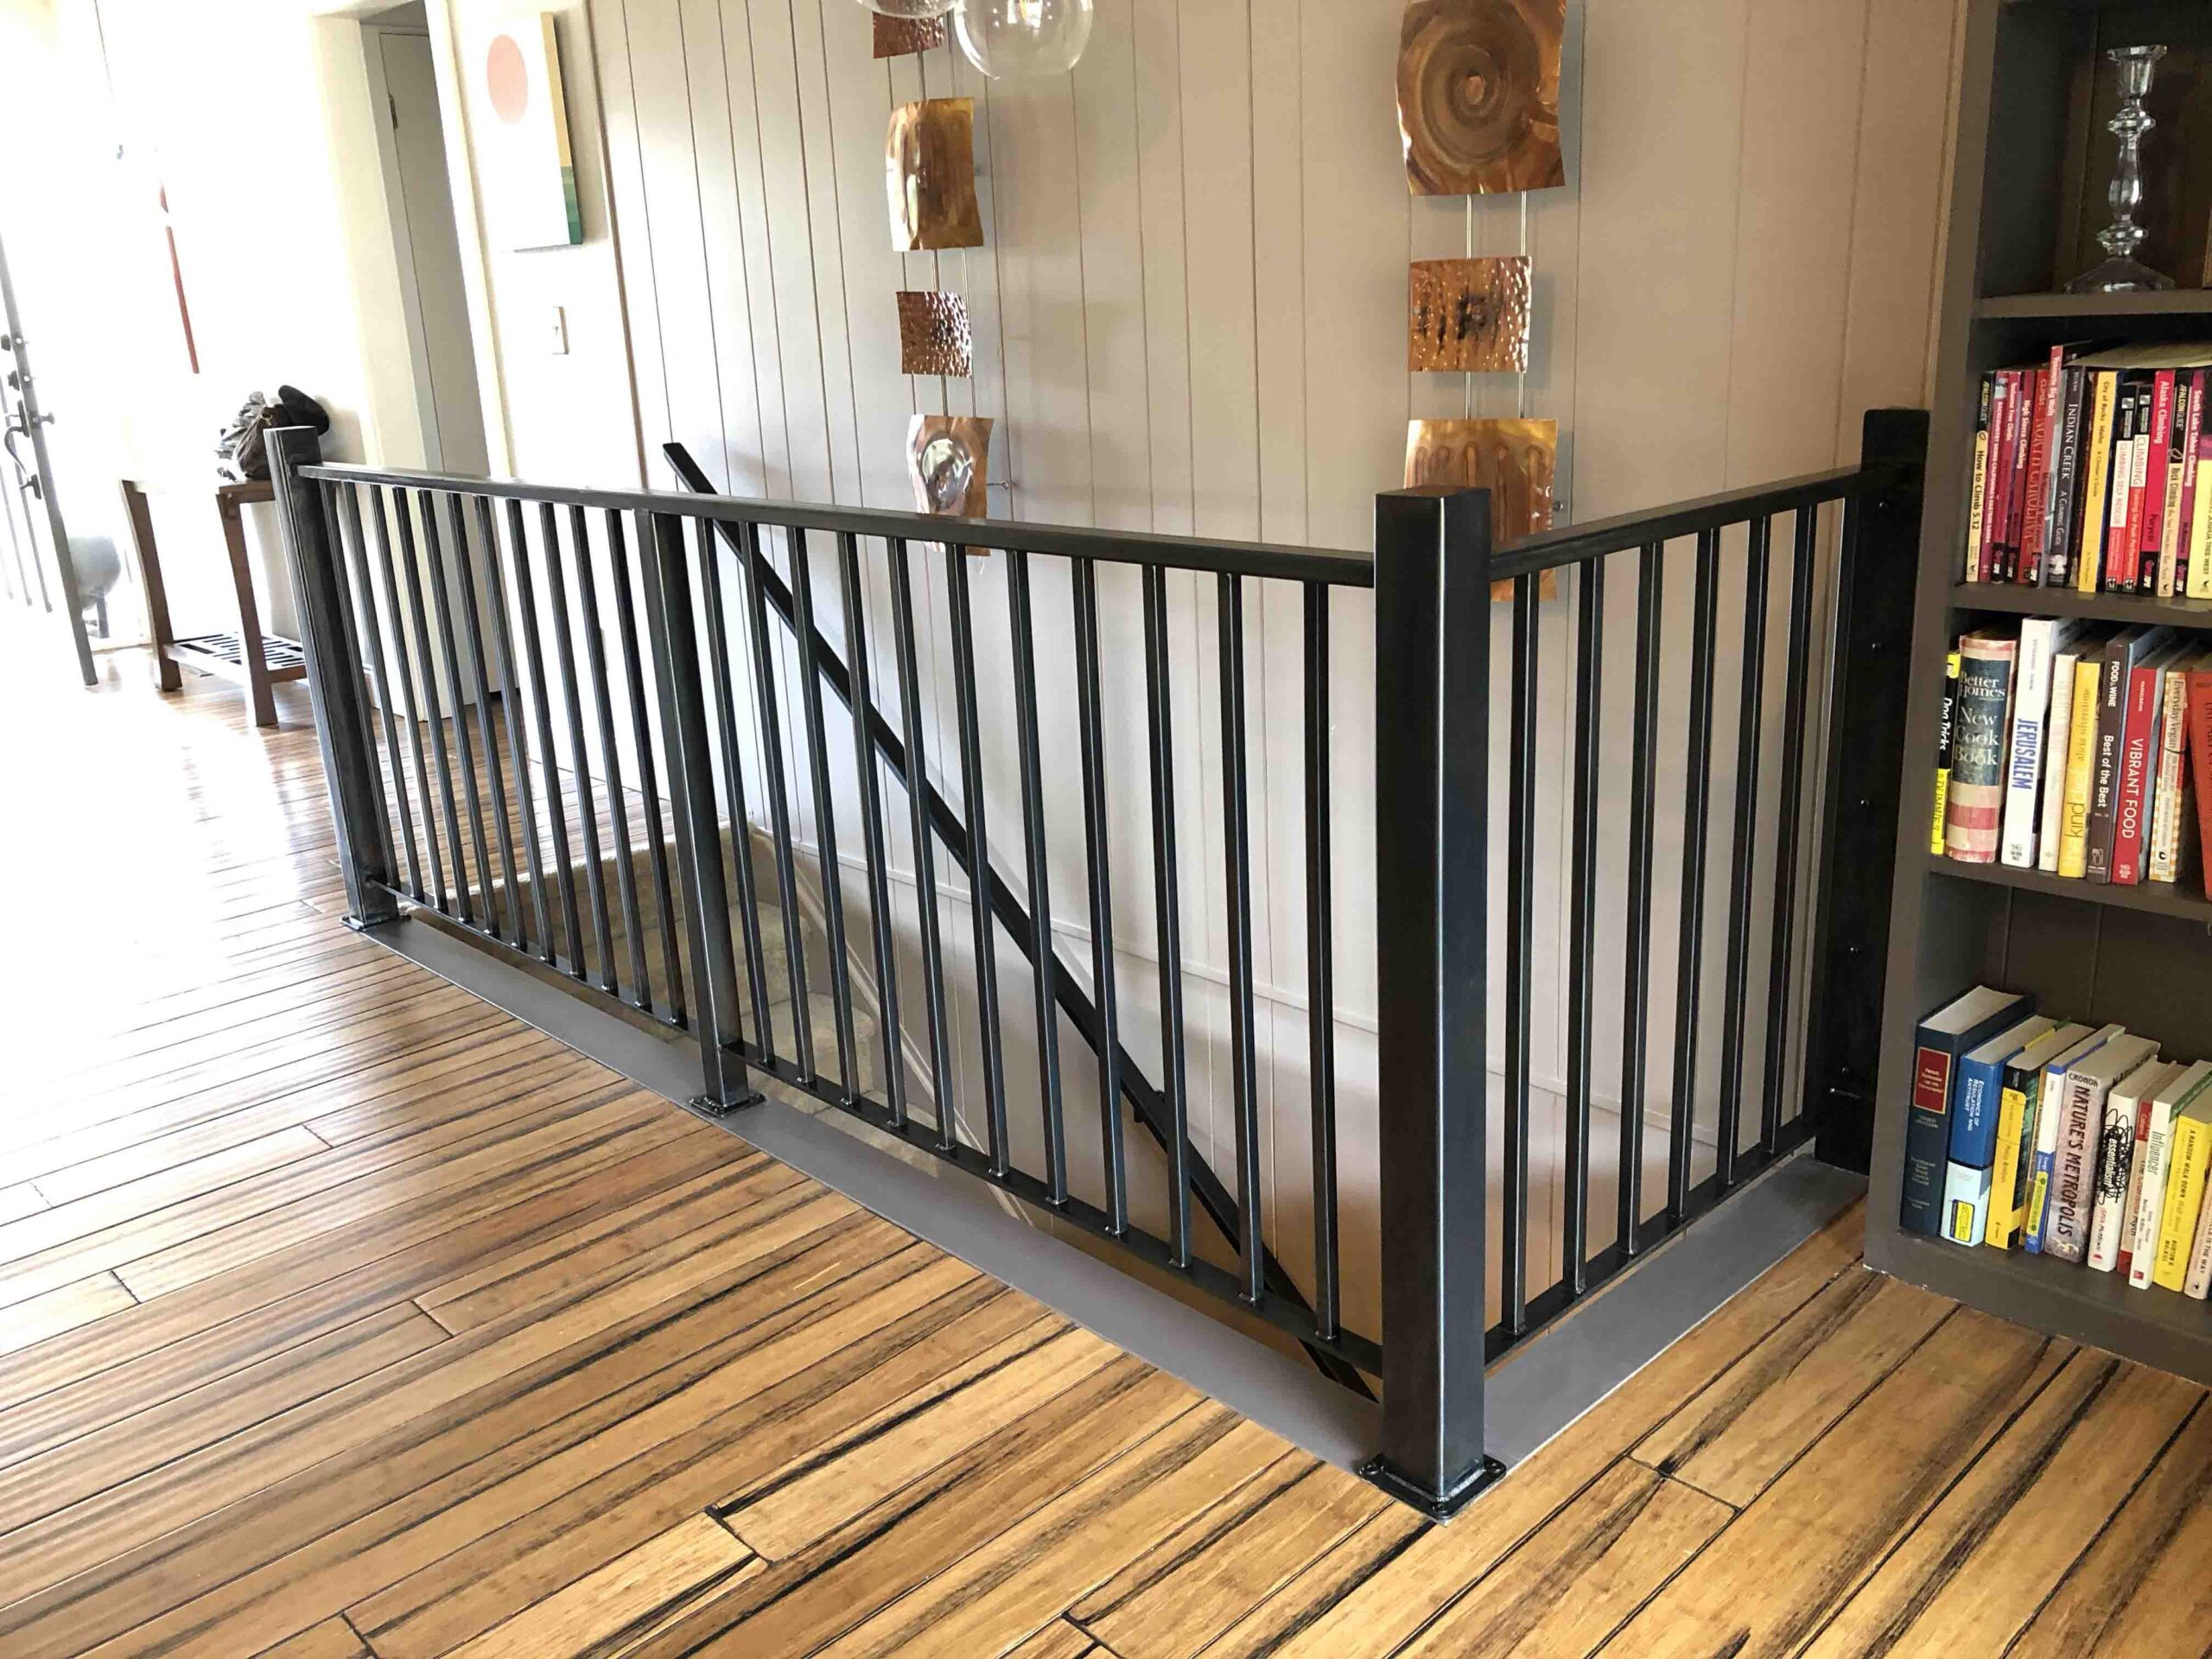 This 1960's ranch needed a new guardrail and handrail, and the design needed to complement the vertical wood paneling as well as the lines of the flooring. The patina softened the metal tone to accentuate other metallic features of the owner's possessions.